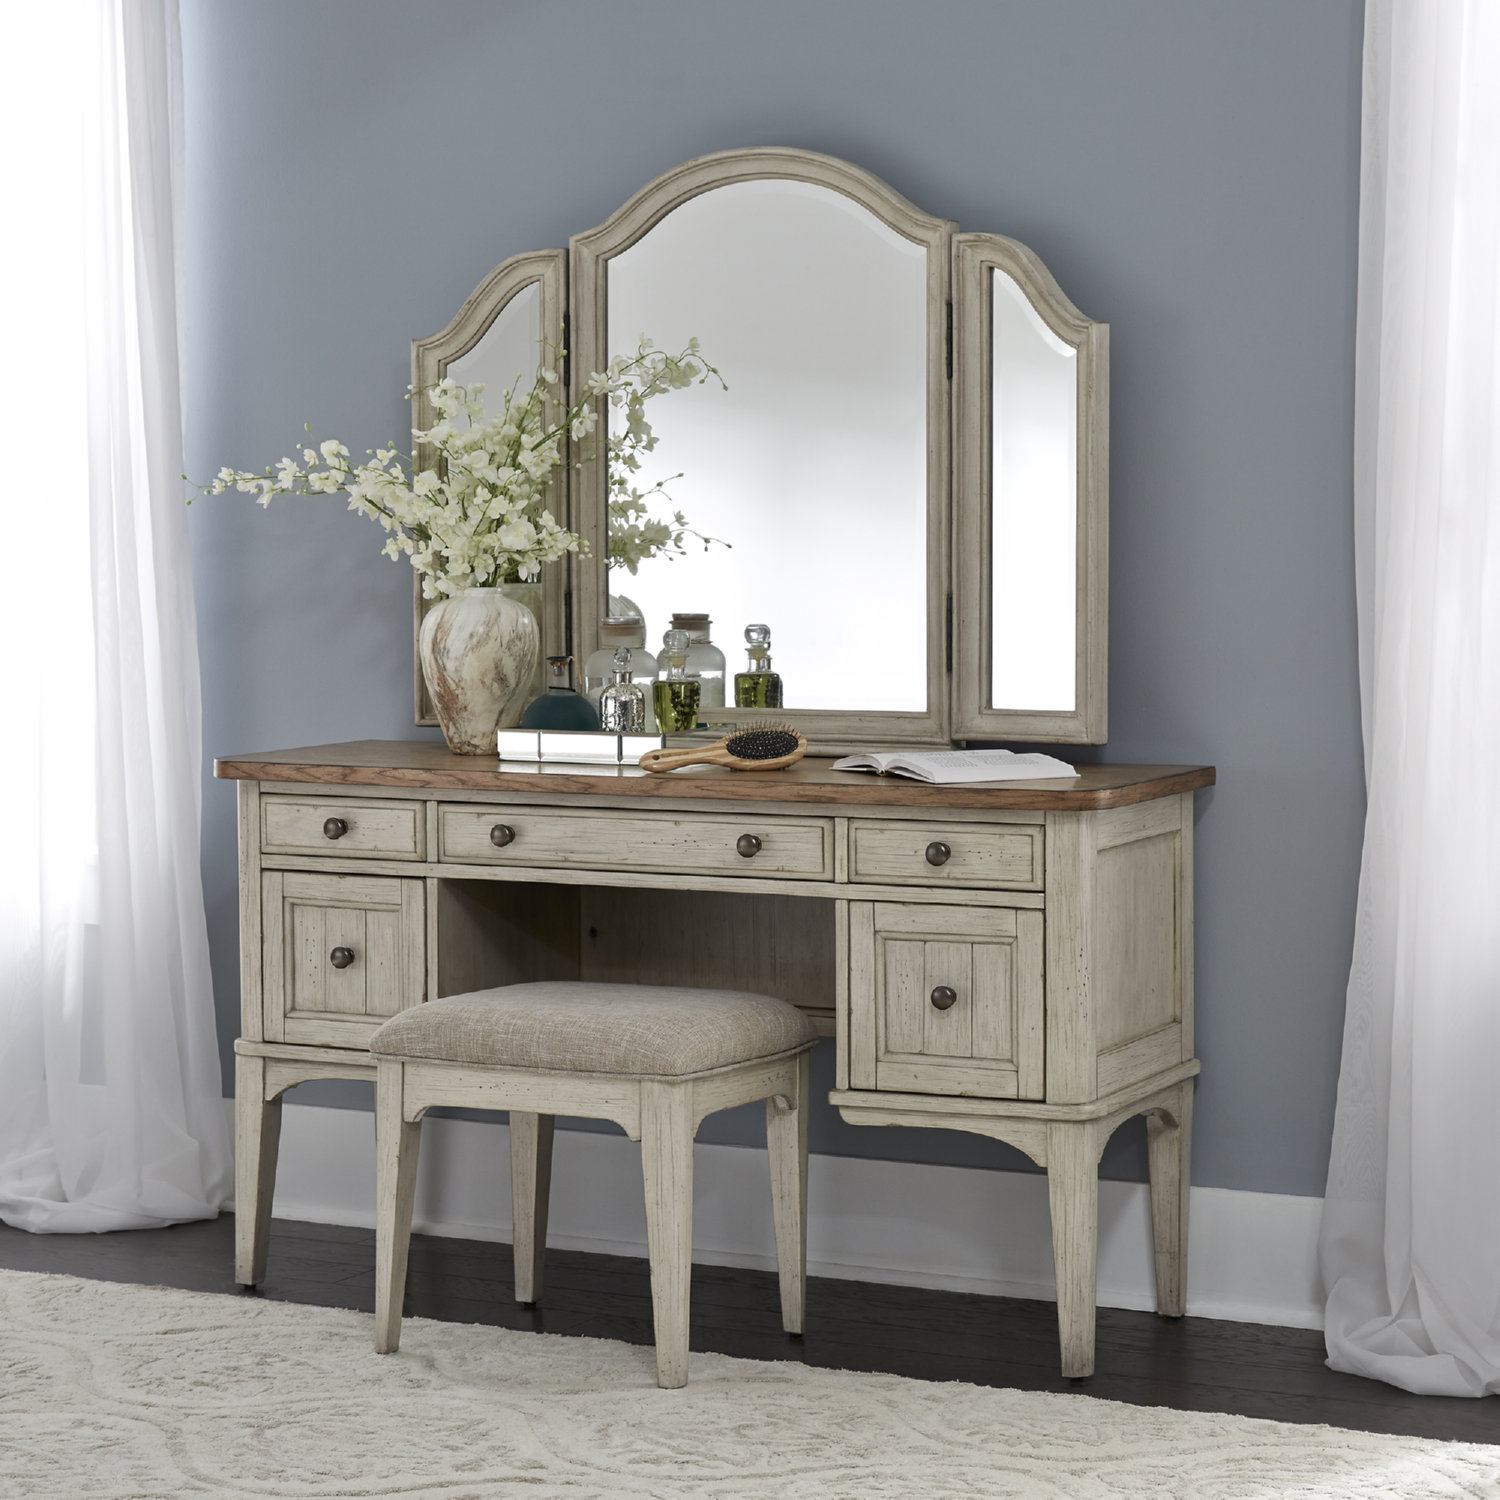 Image of: Liberty 652 Br Vn Farmhouse Reimagined Bedroom Vanity Set In White Brown